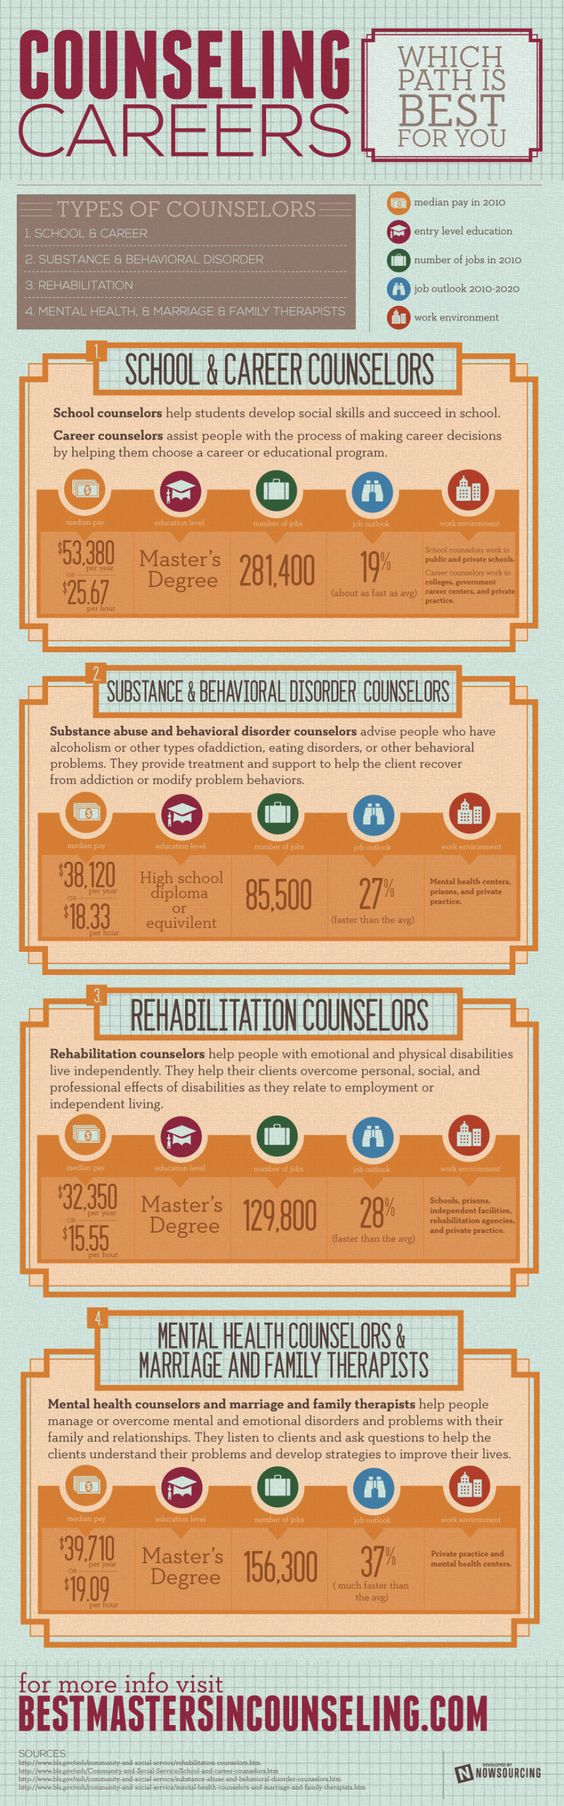 Counseling Careers: Which Path Is Best For You#INFOGRAPHIC